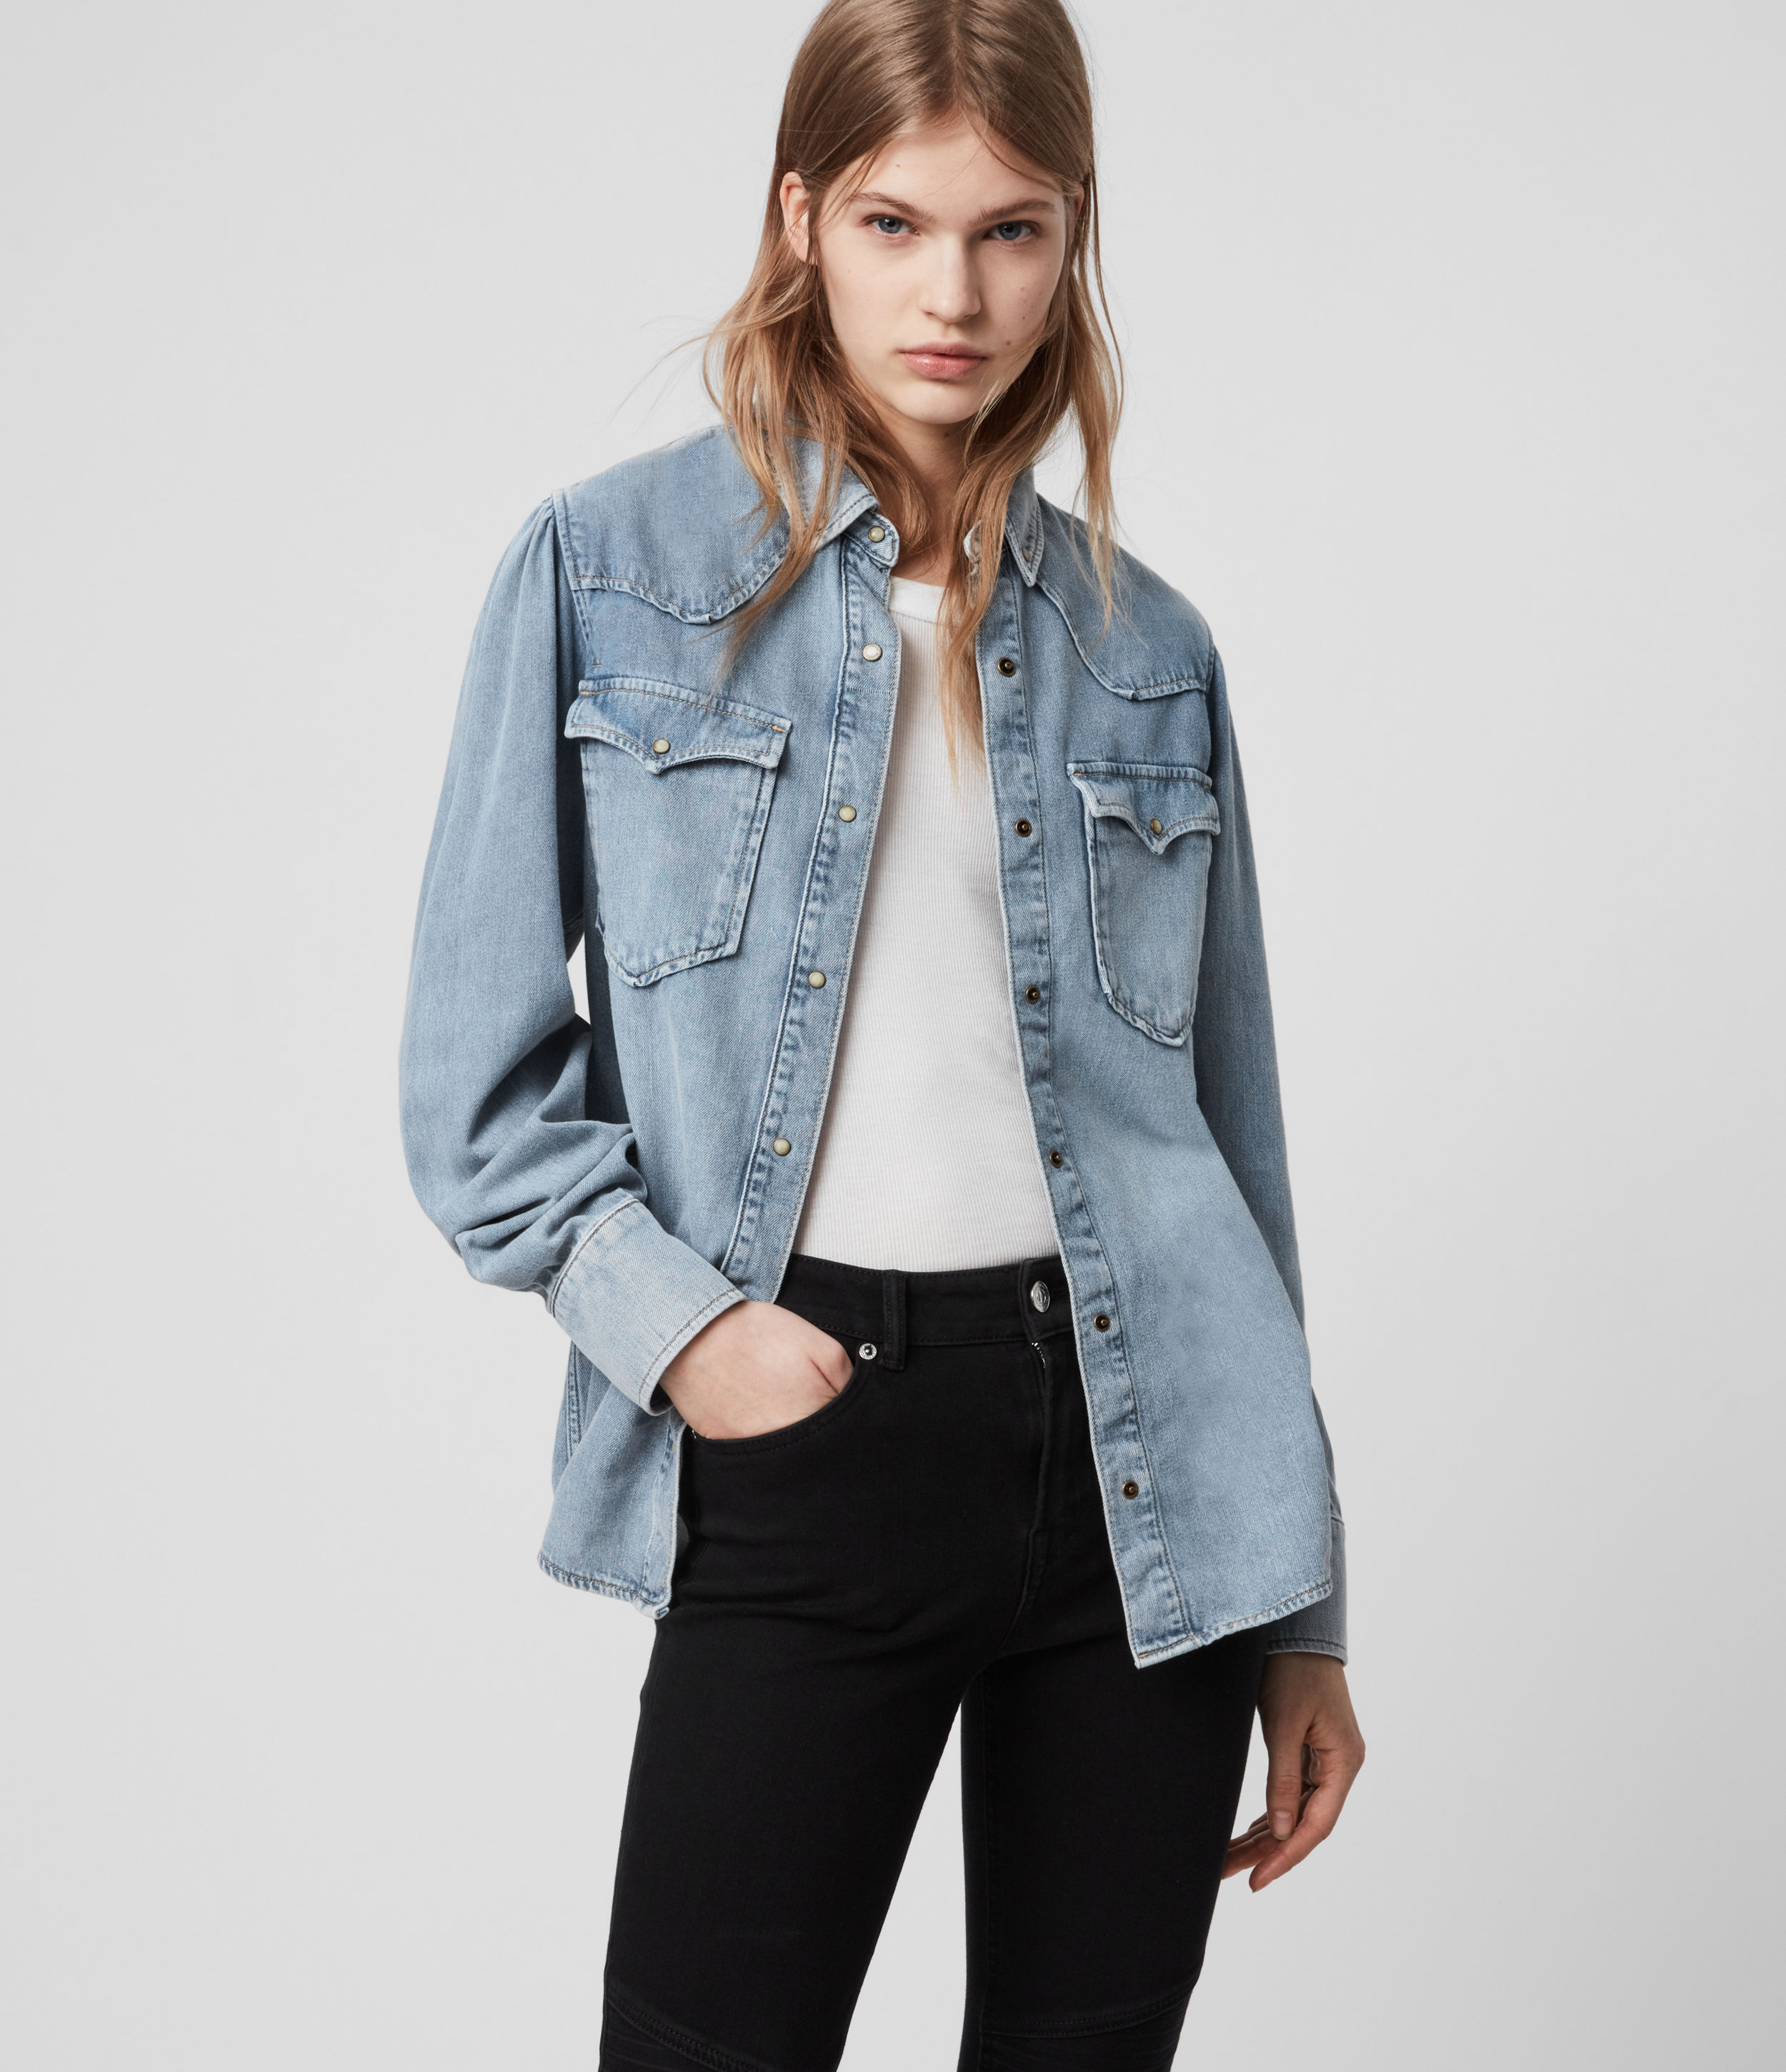 AllSaints Womens Ava Denim Shirt, Light Indigo Blue, Size: 6